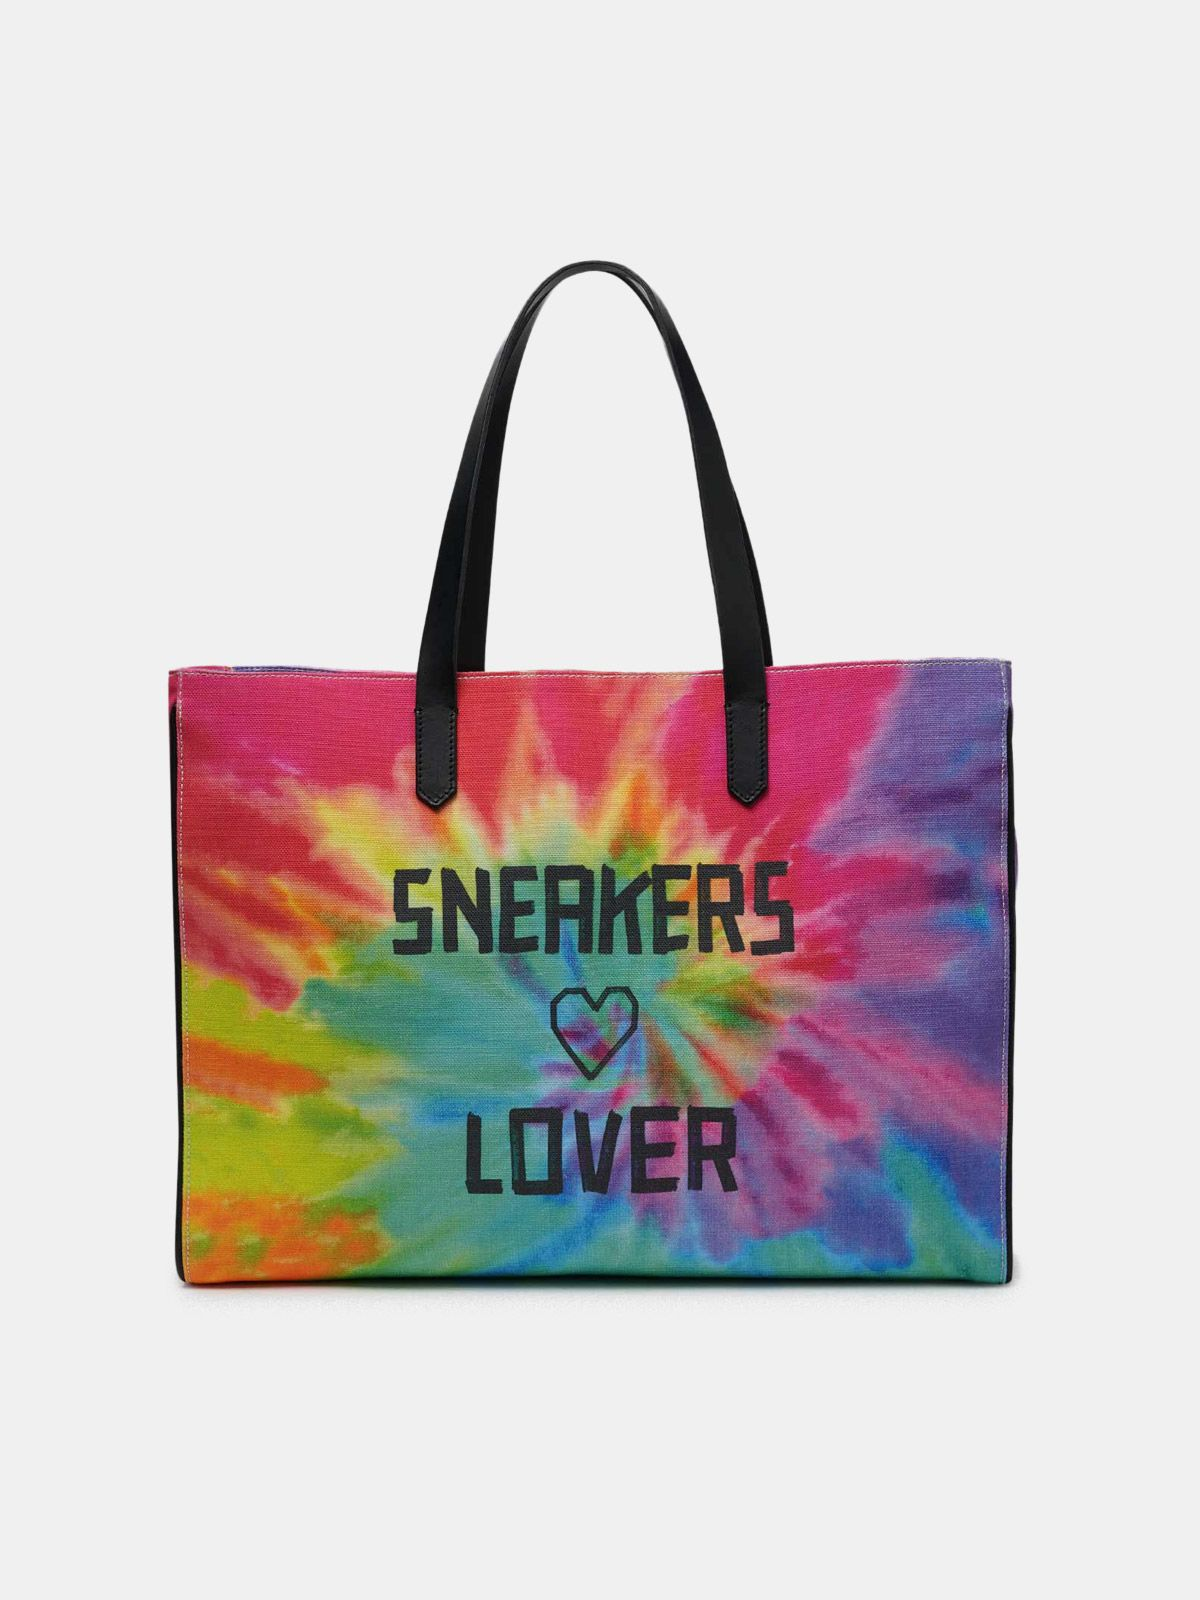 Golden Goose - California East-West tie-dye bag with Sneakers Lover print in